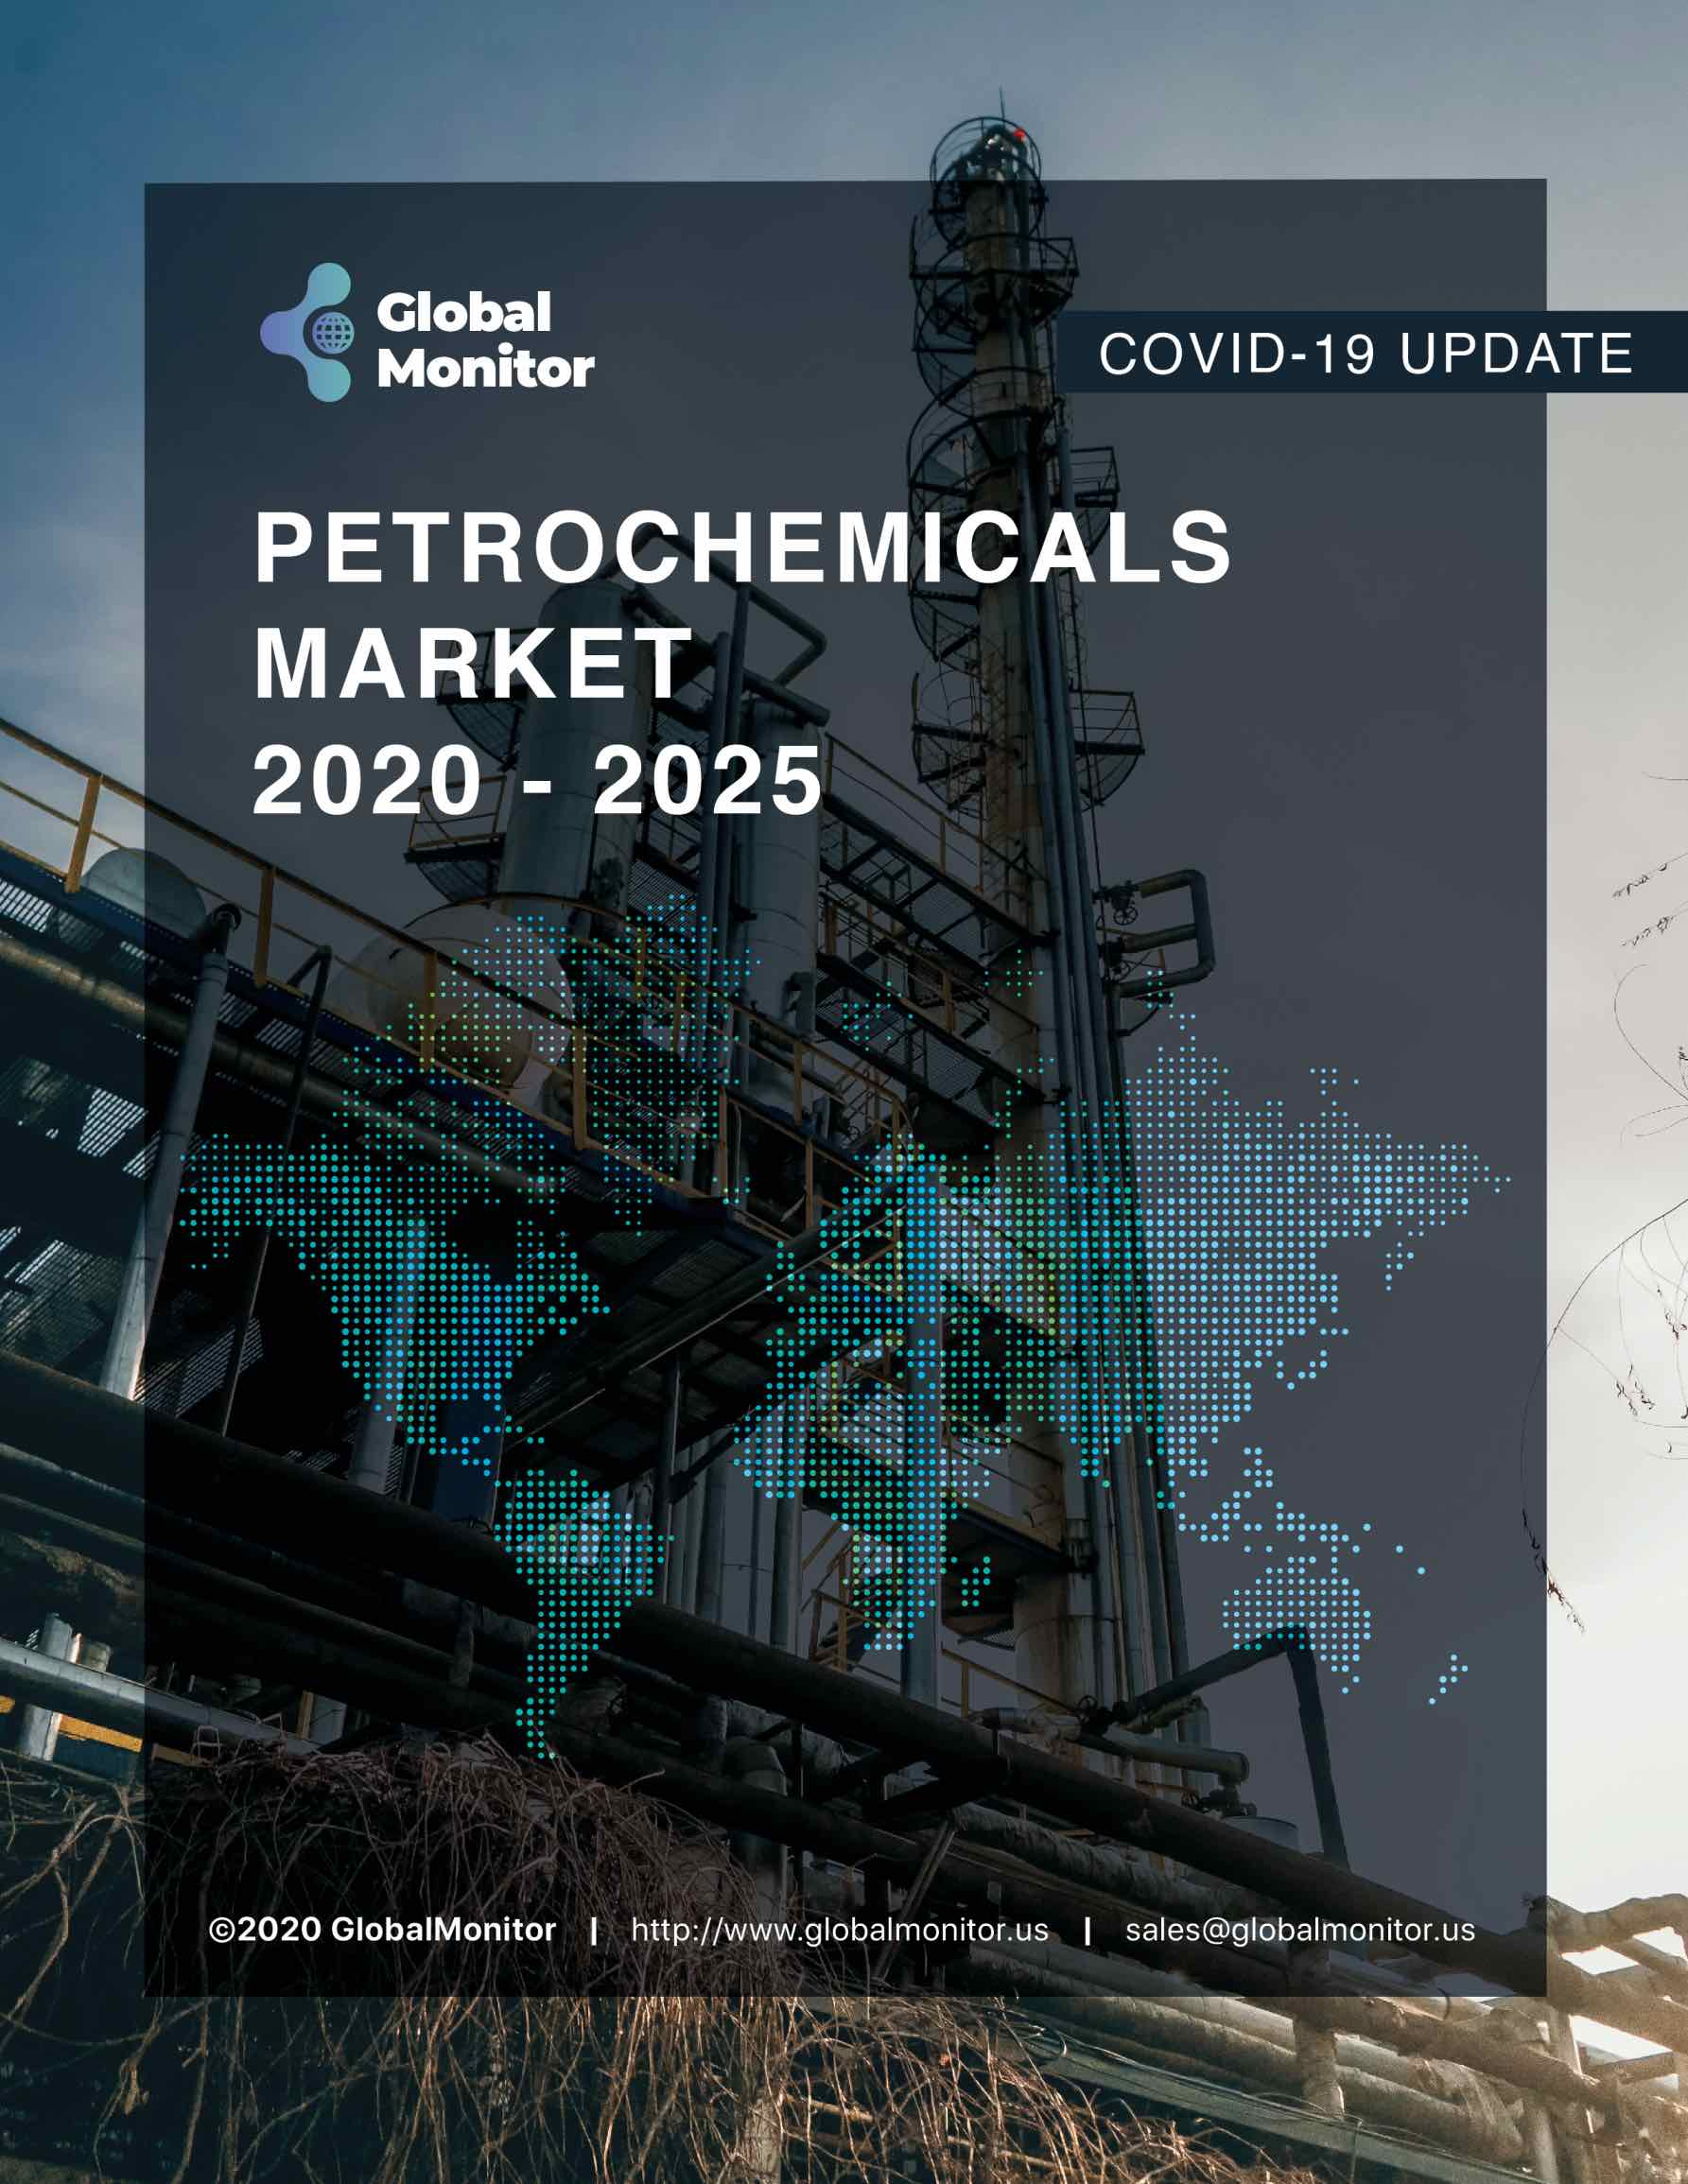 Netherland Petrochemicals Market Report With COVID-19 Analysis (2020-2025)